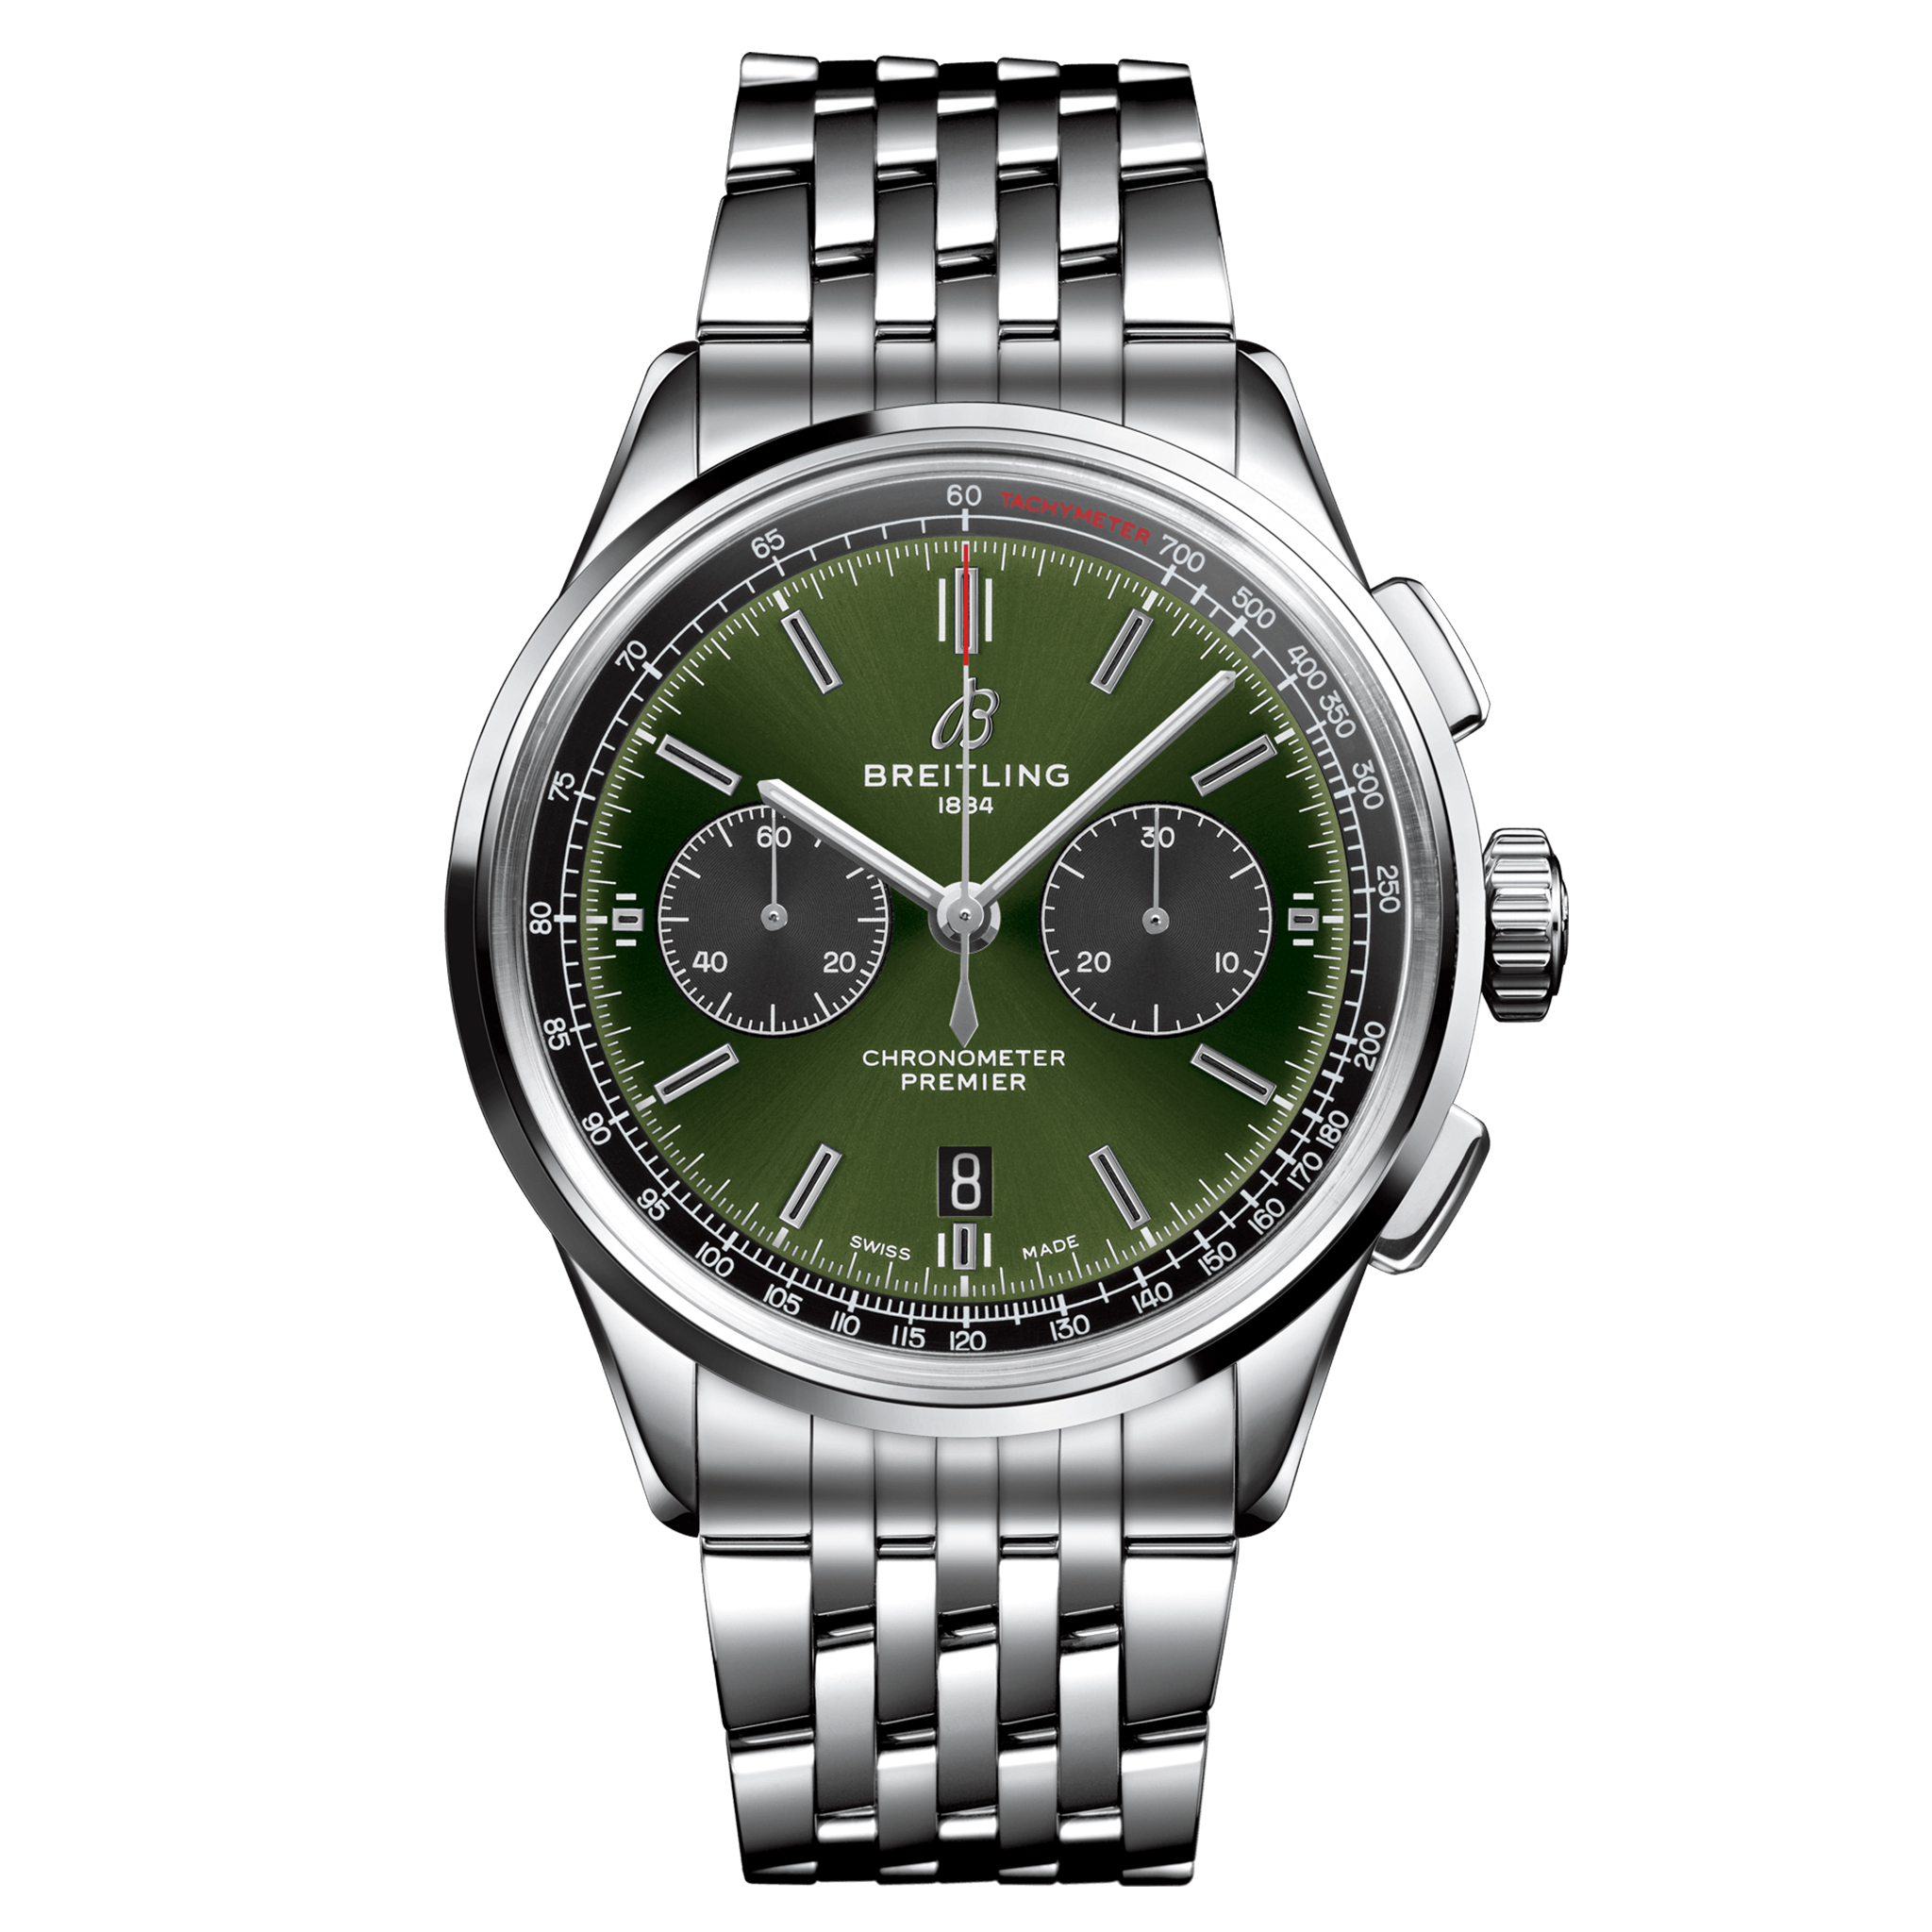 CHRONOGRAPH 42 BENTLEY